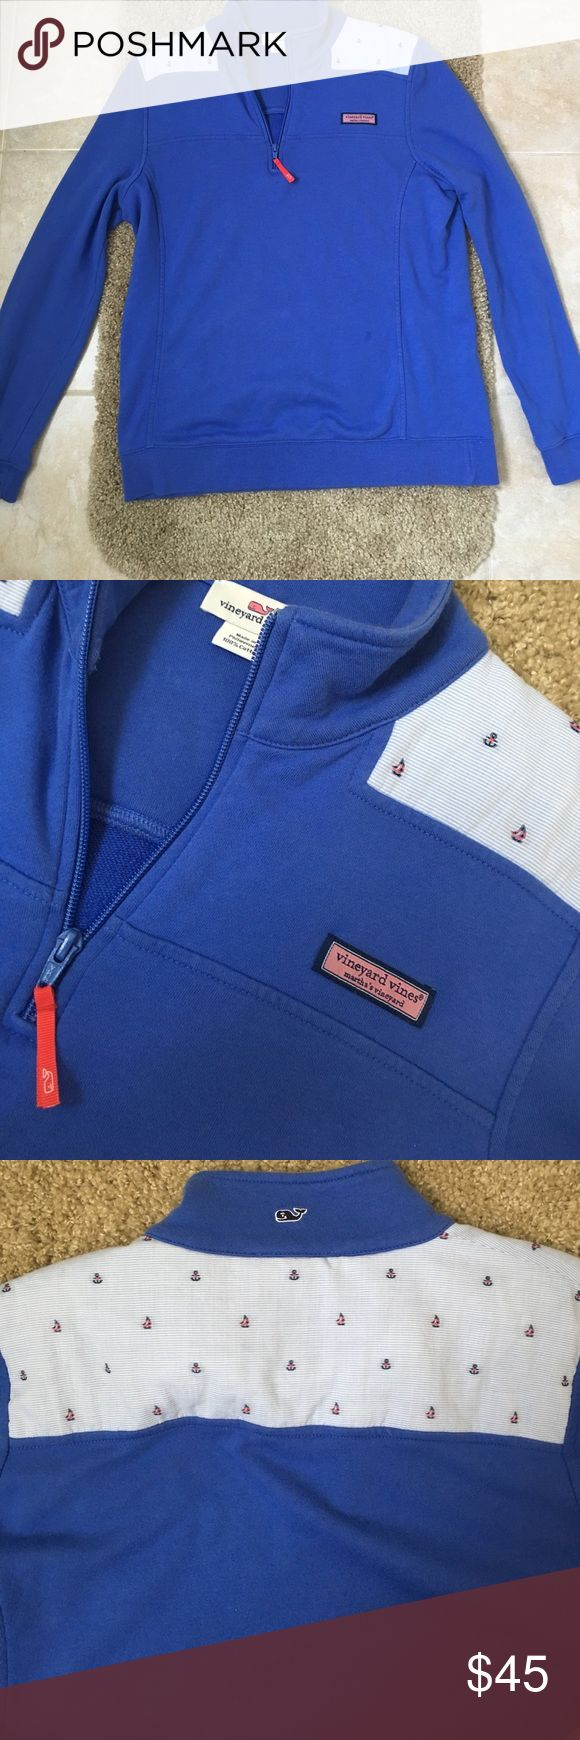 Vineyard Vines Women's Shep Shirt Quarter Zip pullover with Nautical Design. Barely worn. Vineyard Vines Jackets & Coats